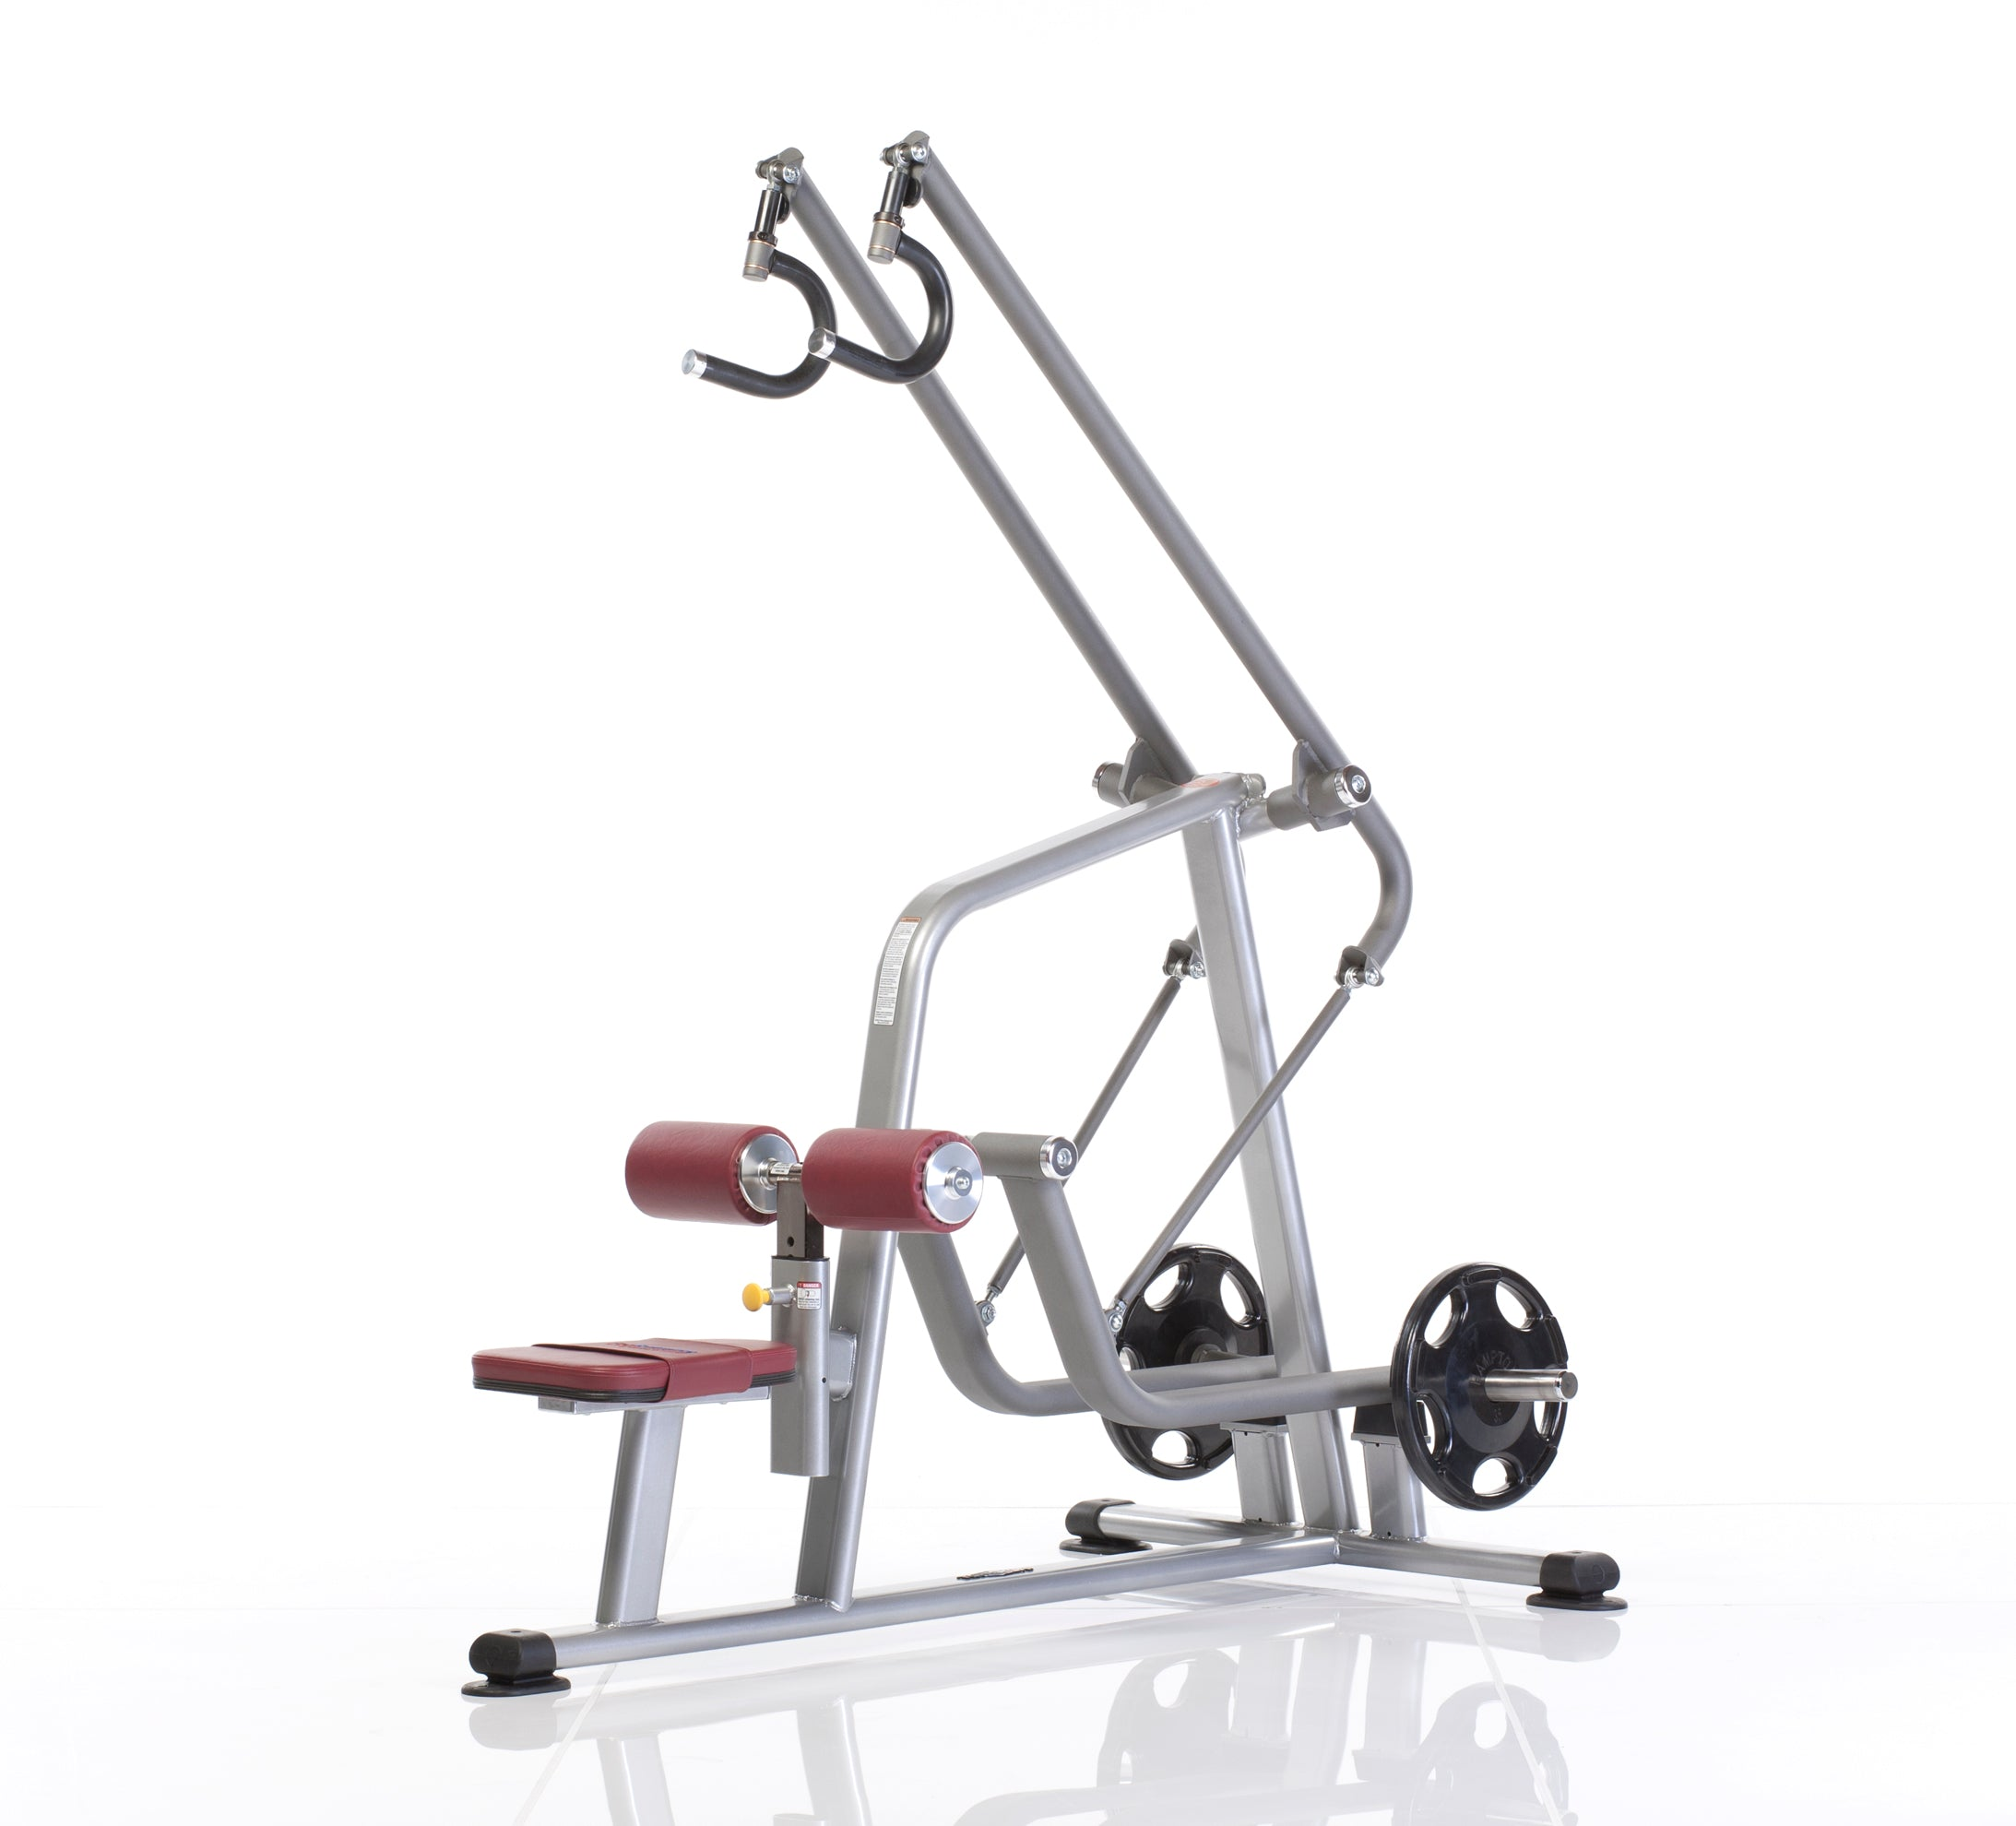 Tuff Stuff Proformance Plus Plate-Loaded Lat Pulldown